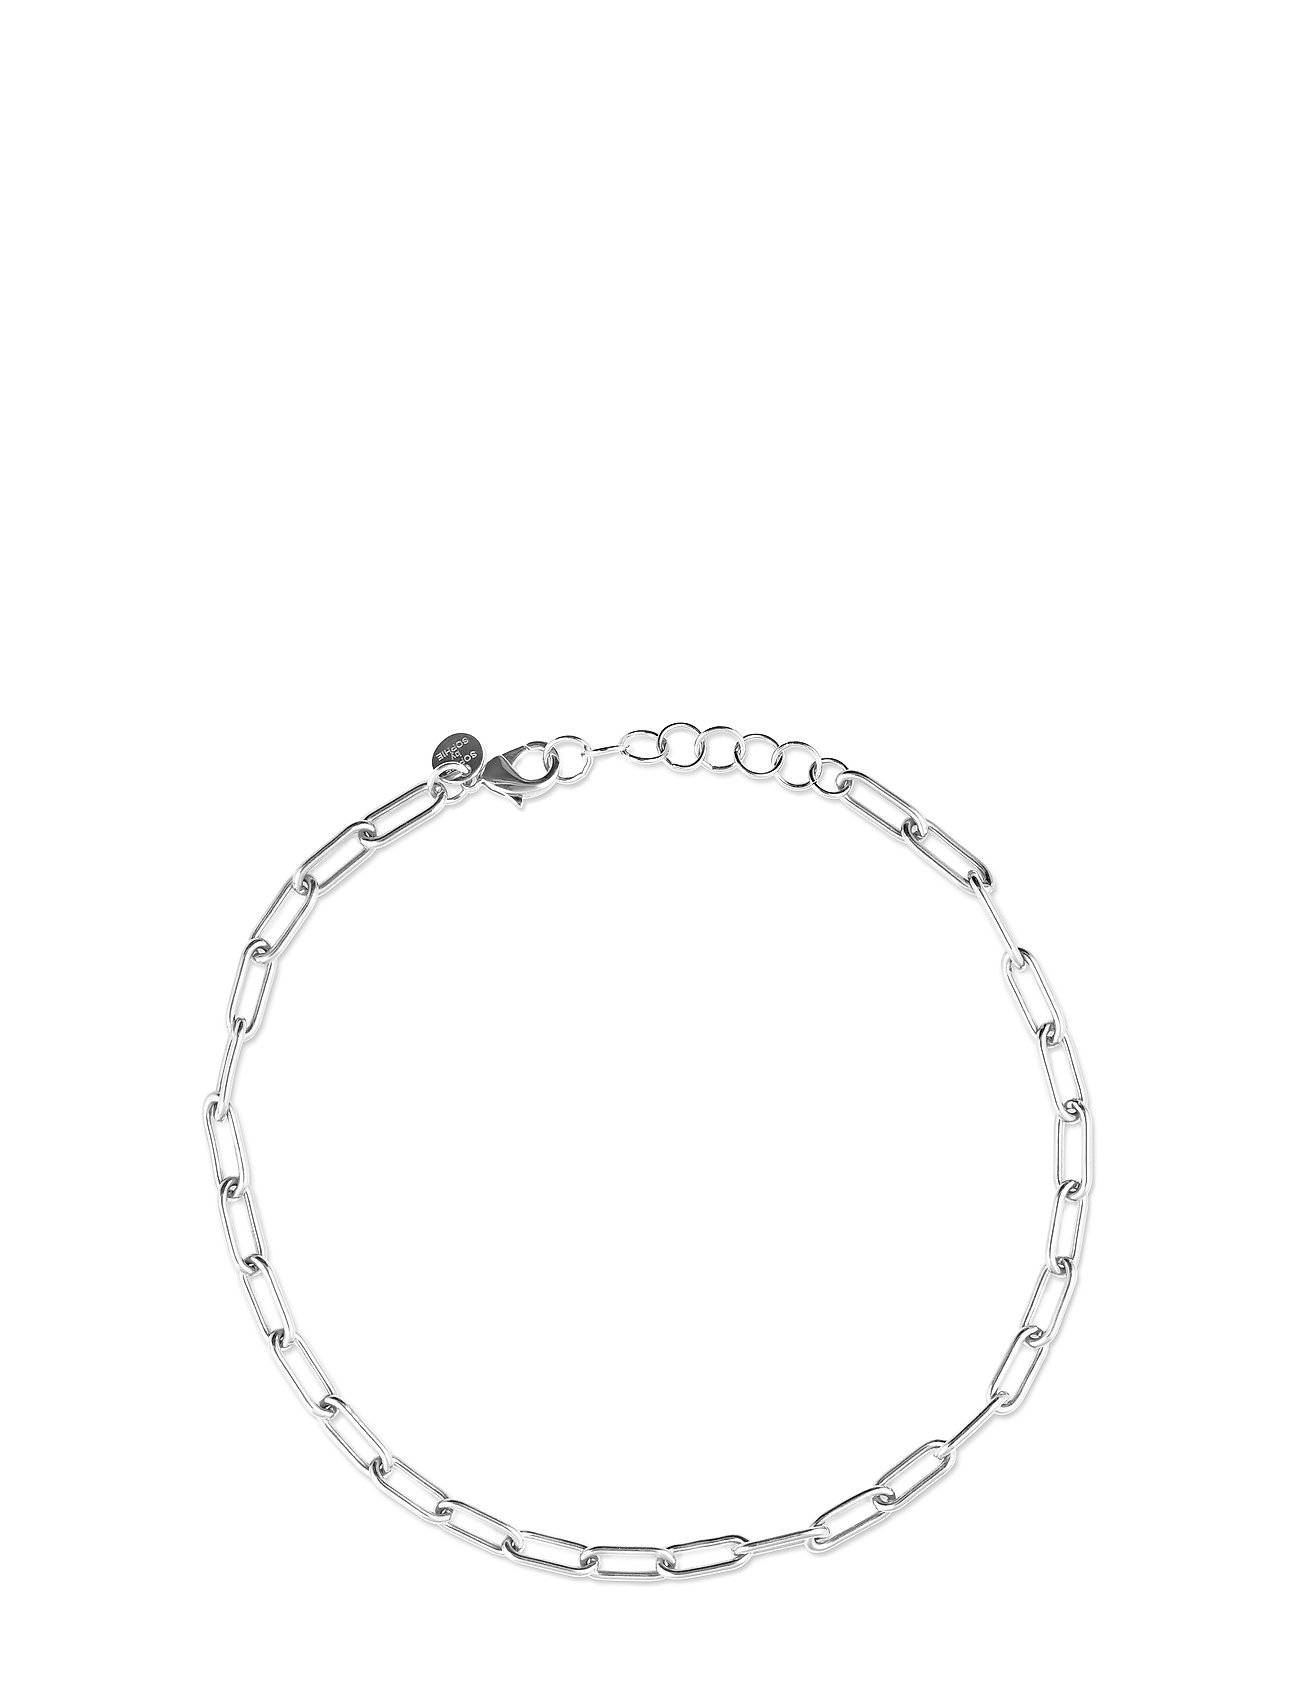 SOPHIE by SOPHIE Link Chain Necklace Accessories Jewellery Necklaces Dainty Necklaces Hopea SOPHIE By SOPHIE